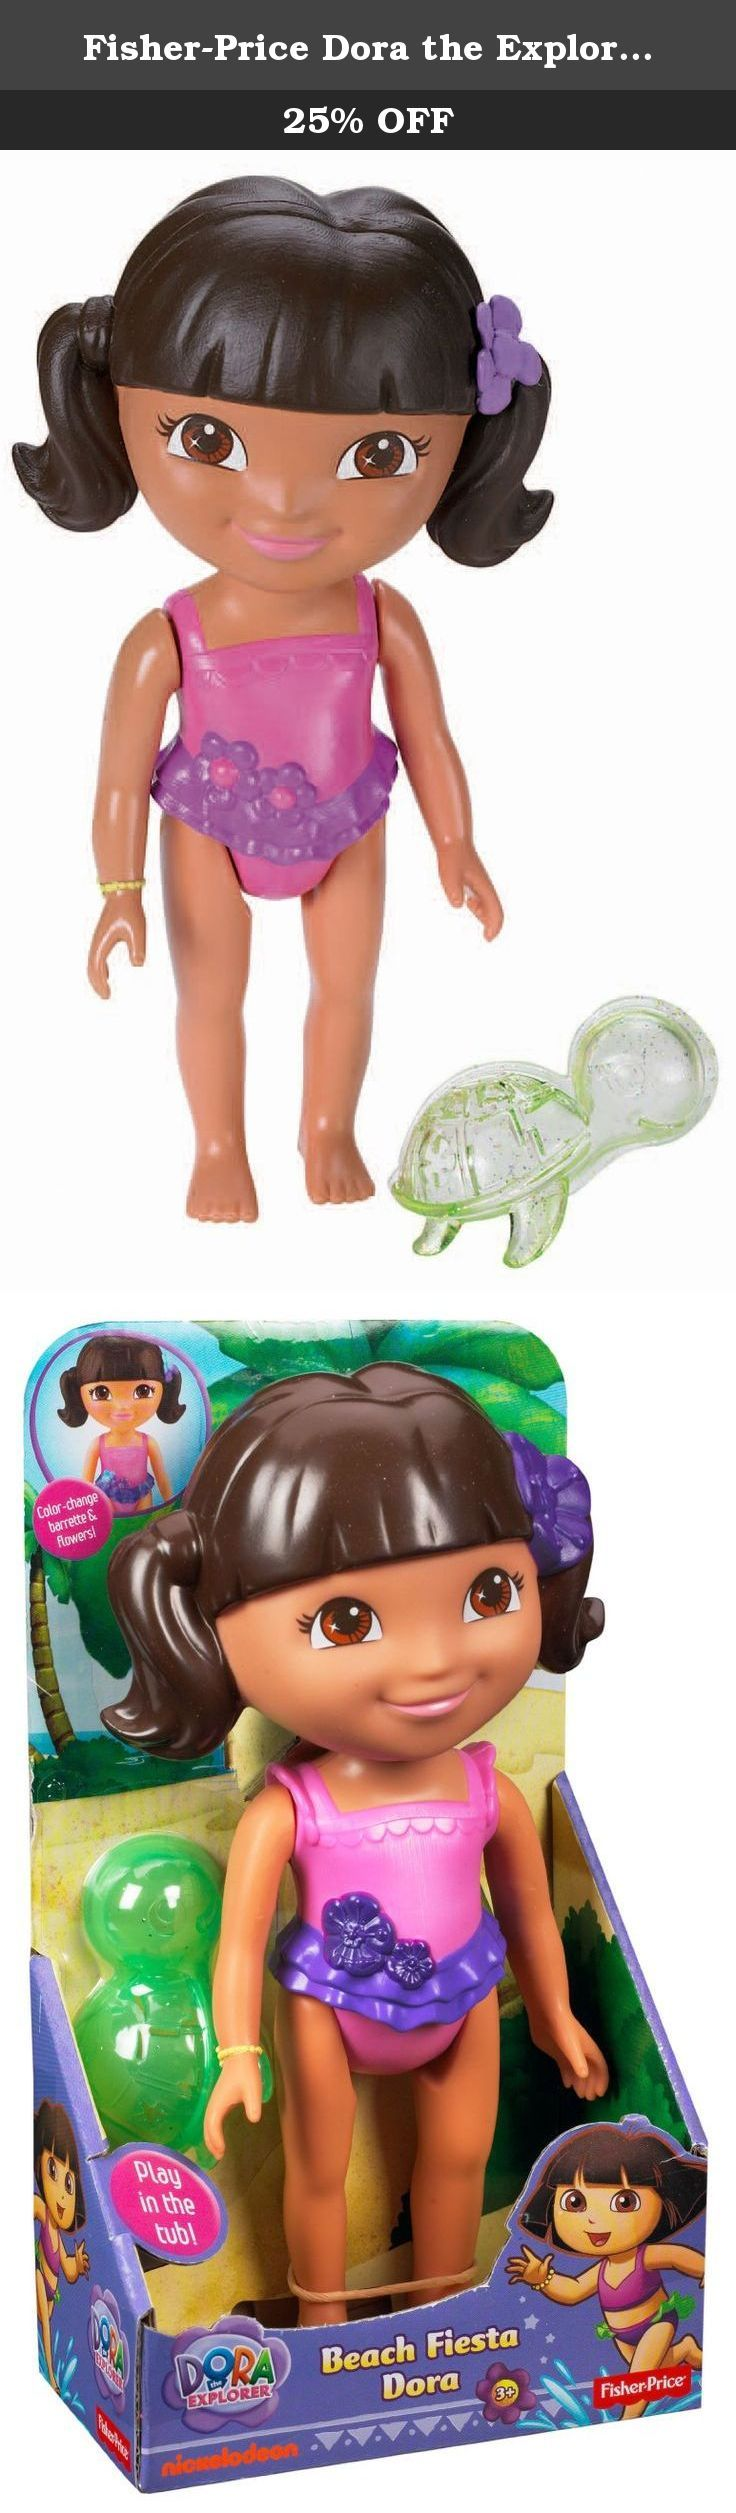 Fisher-Price Dora the Explorer: Bathtime Beach Party (Fiesta) Dora. Join Dora for a magical bathtime adventure! Simply use warm water to change the color of Dora's barrette and the flowers on her bathing suit! Dora features poseable arms and legs and also comes with a turtle-shaped water scooper!.